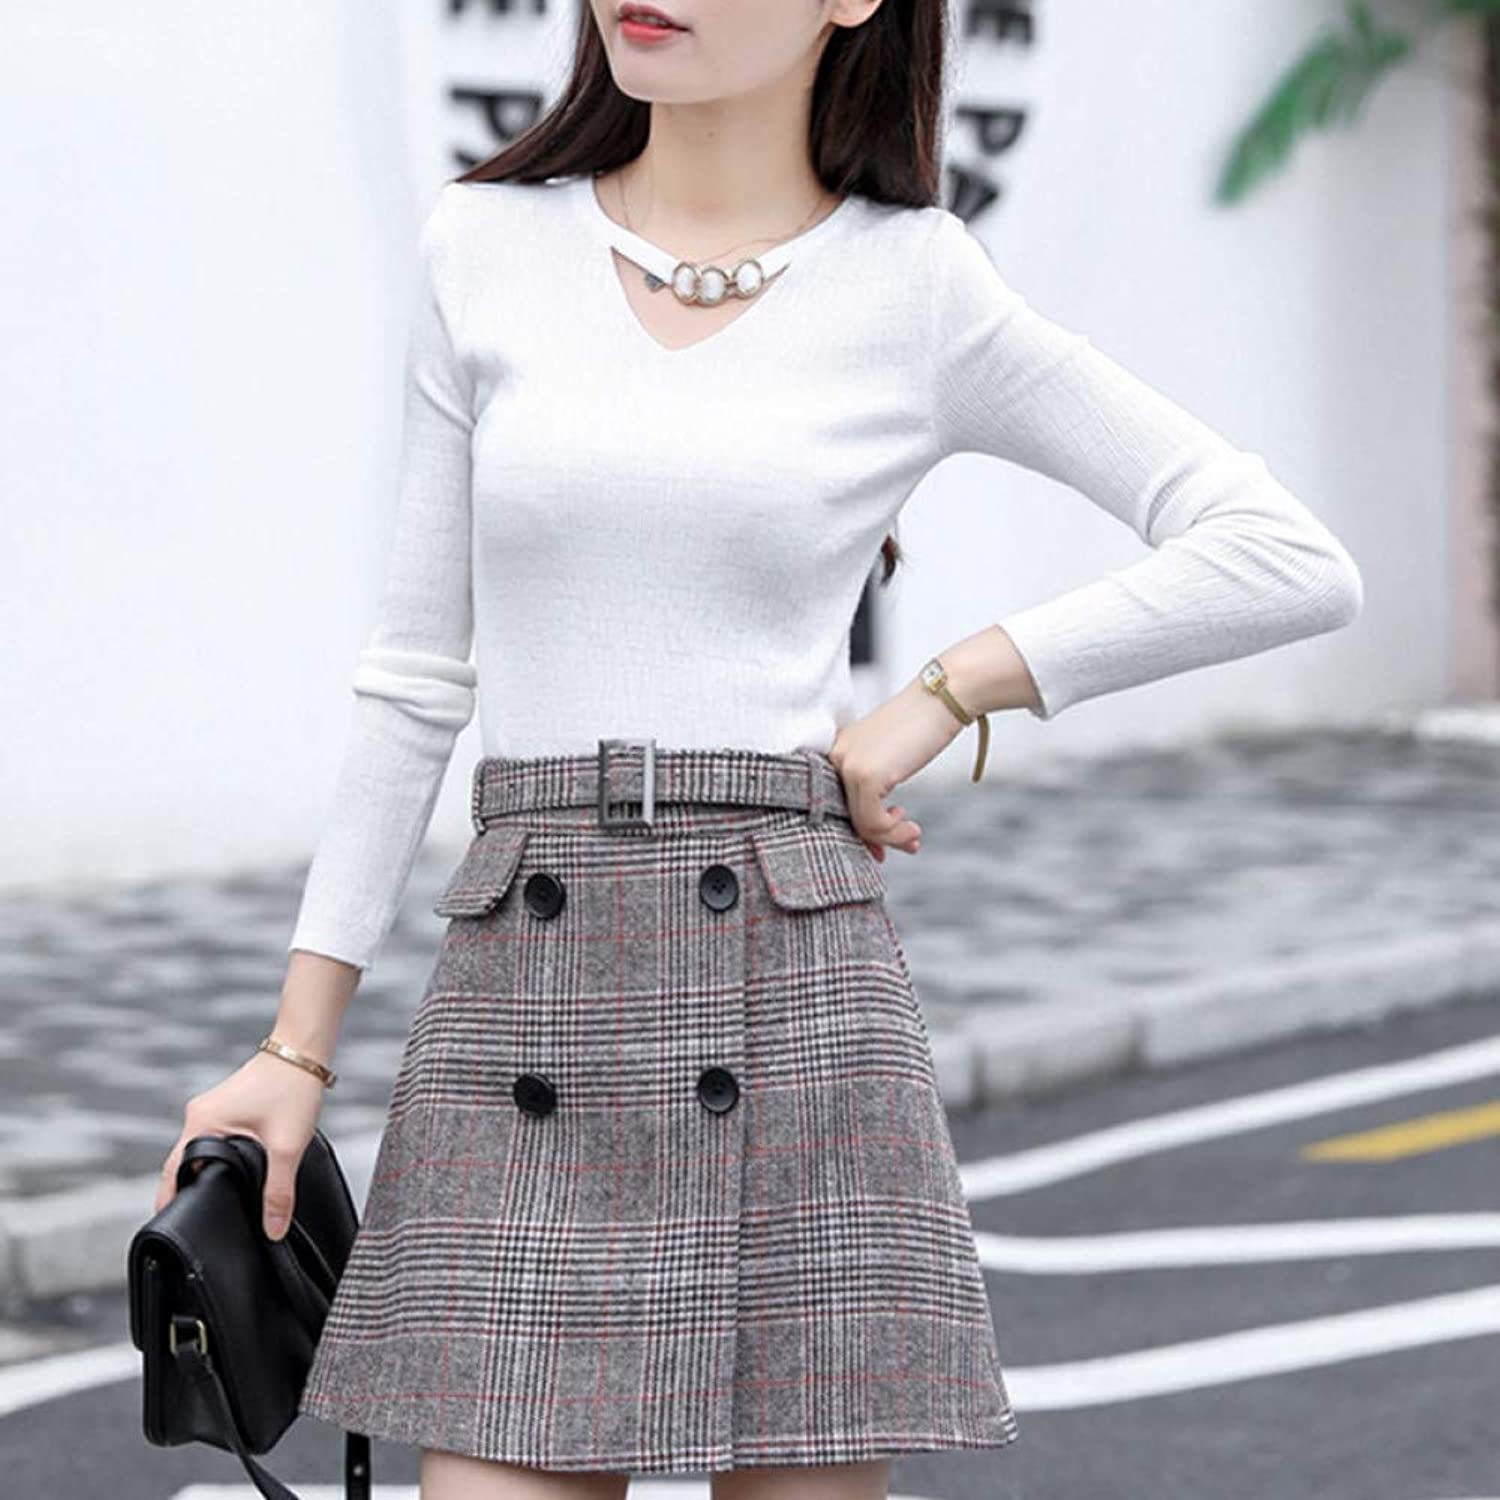 XIAOHUI Women Skirts Spring Autumn Fashion ALine Plaid Midi Skirt Female High Waist Woolen Skirt